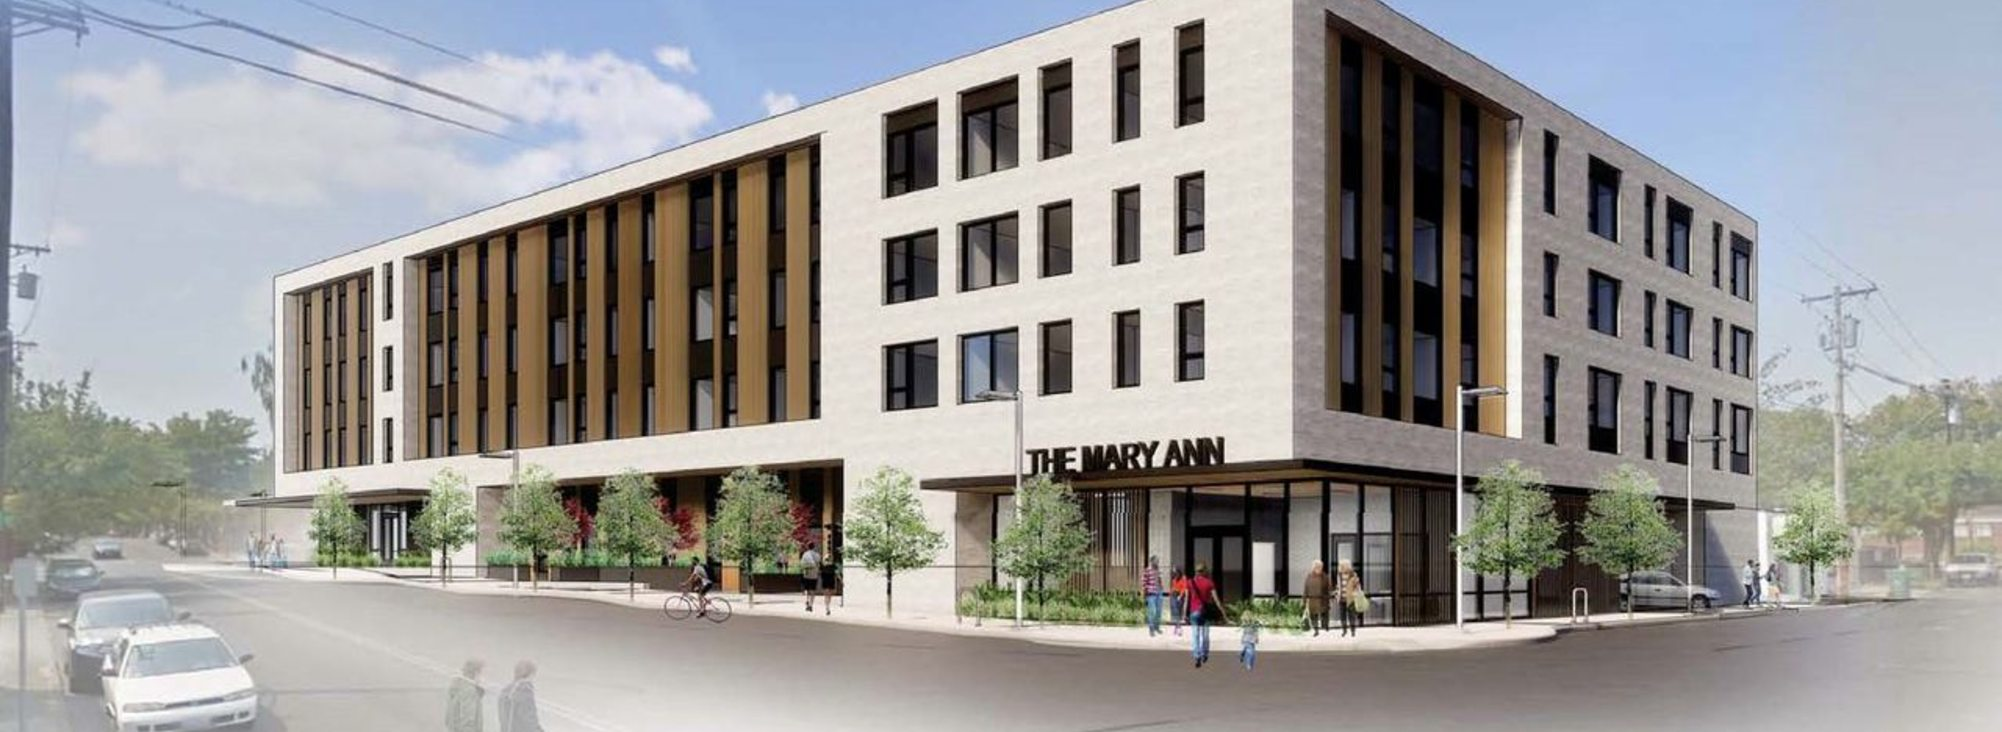 rendering of Mary Ann apartments